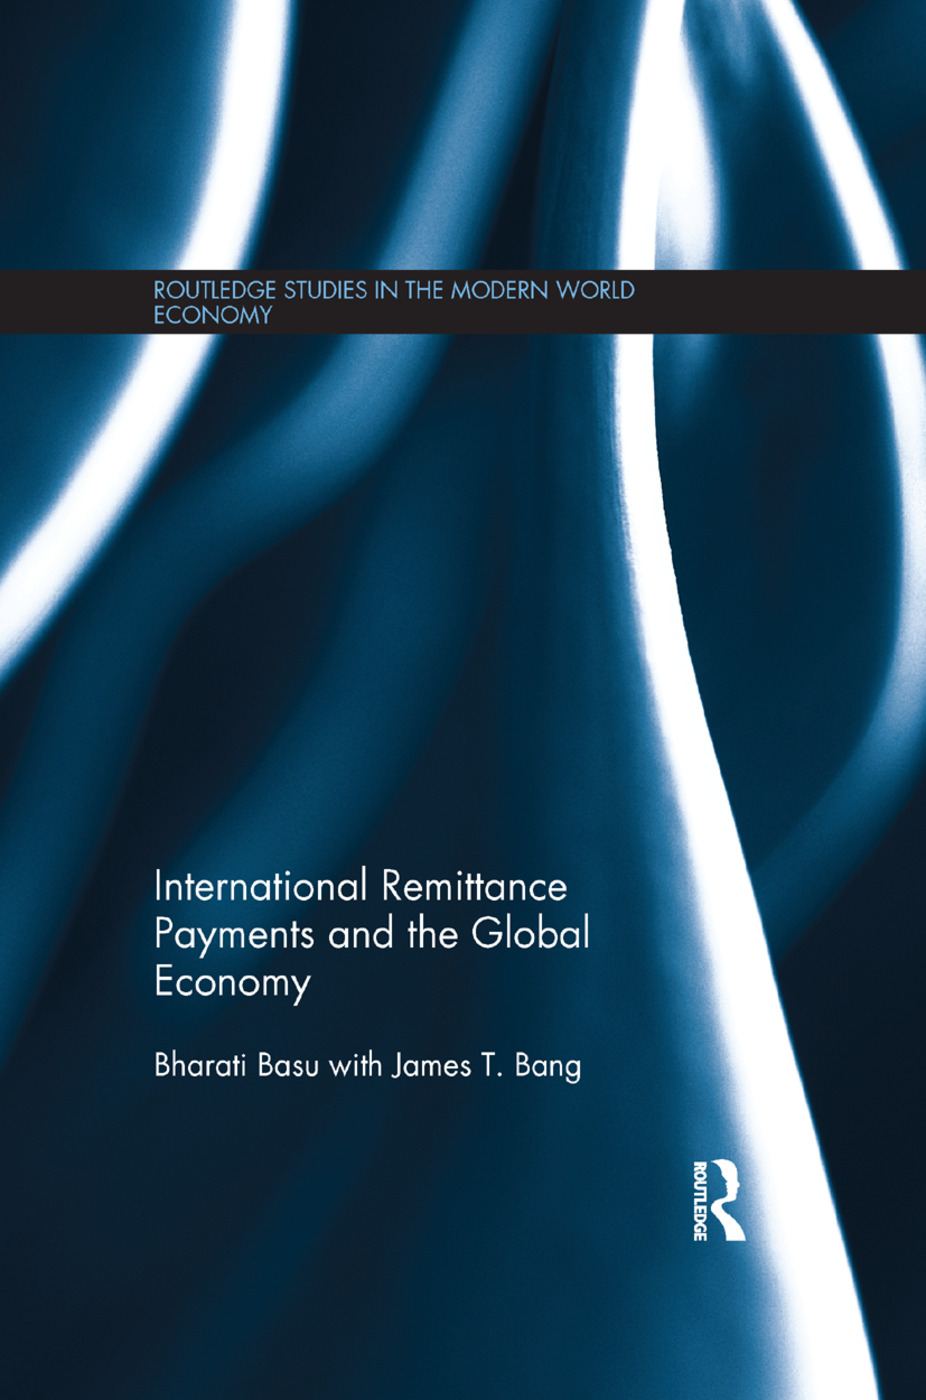 International Remittance Payments and the Global Economy